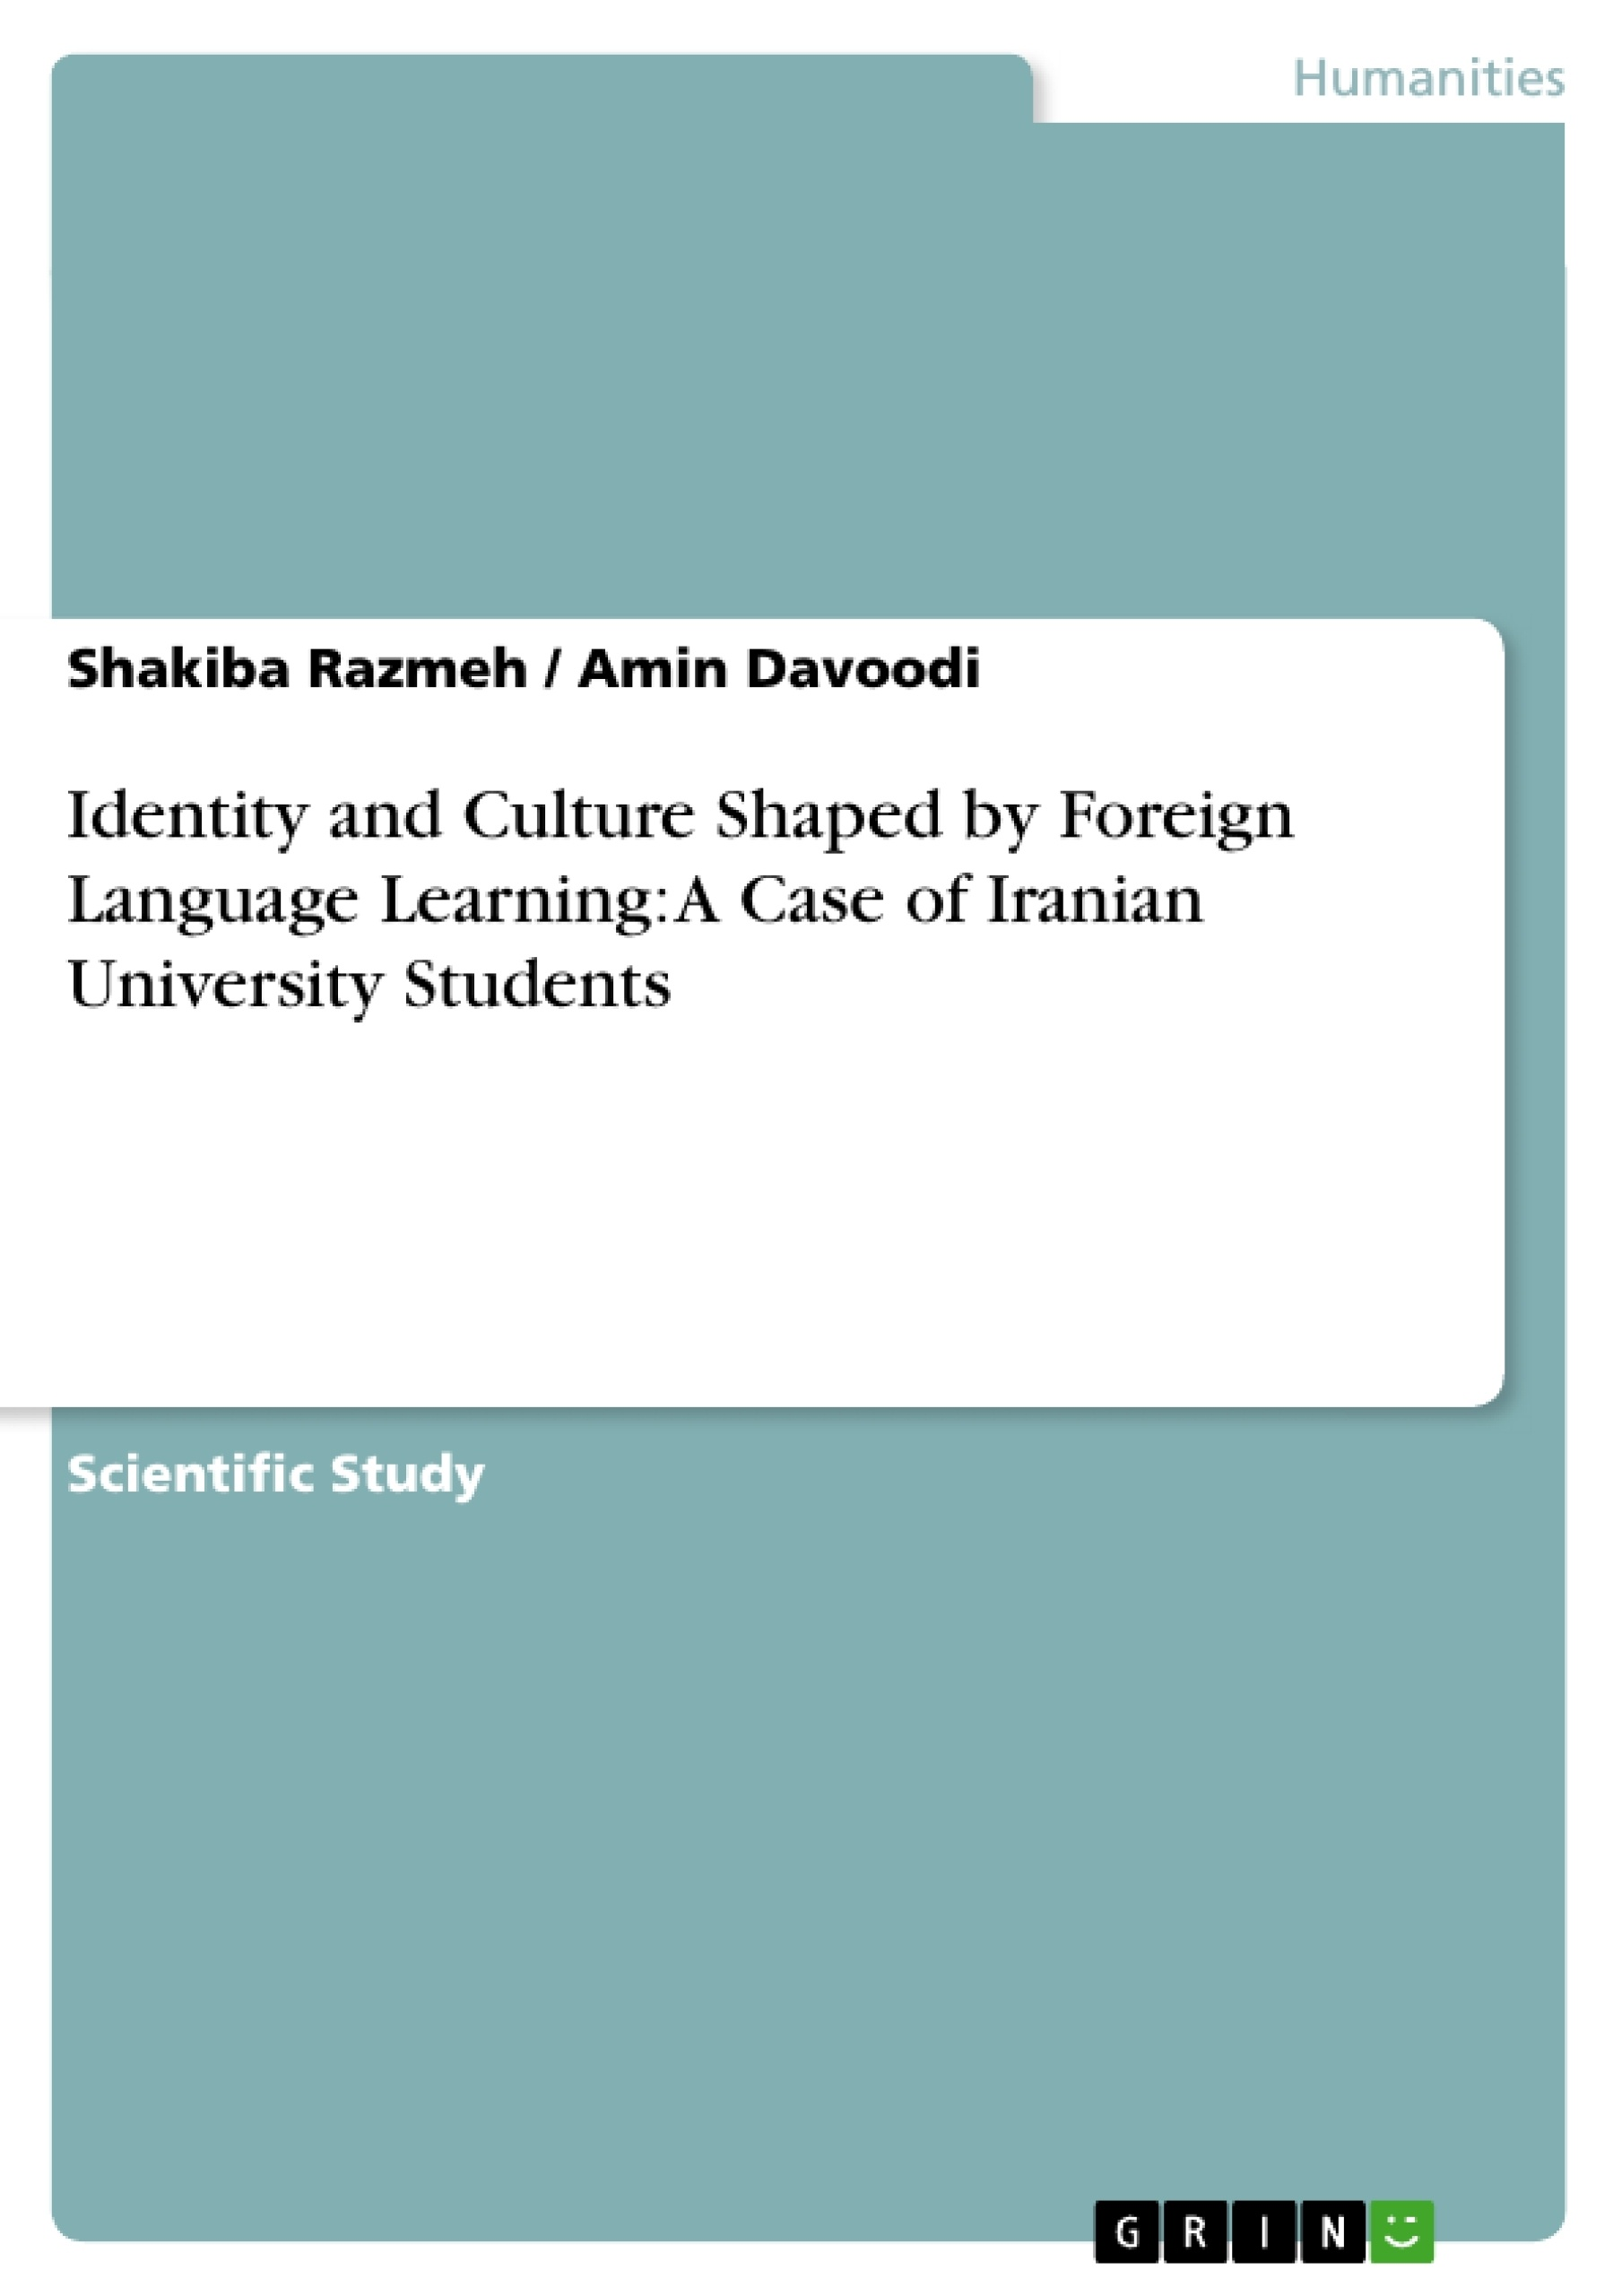 thesis about language and culture